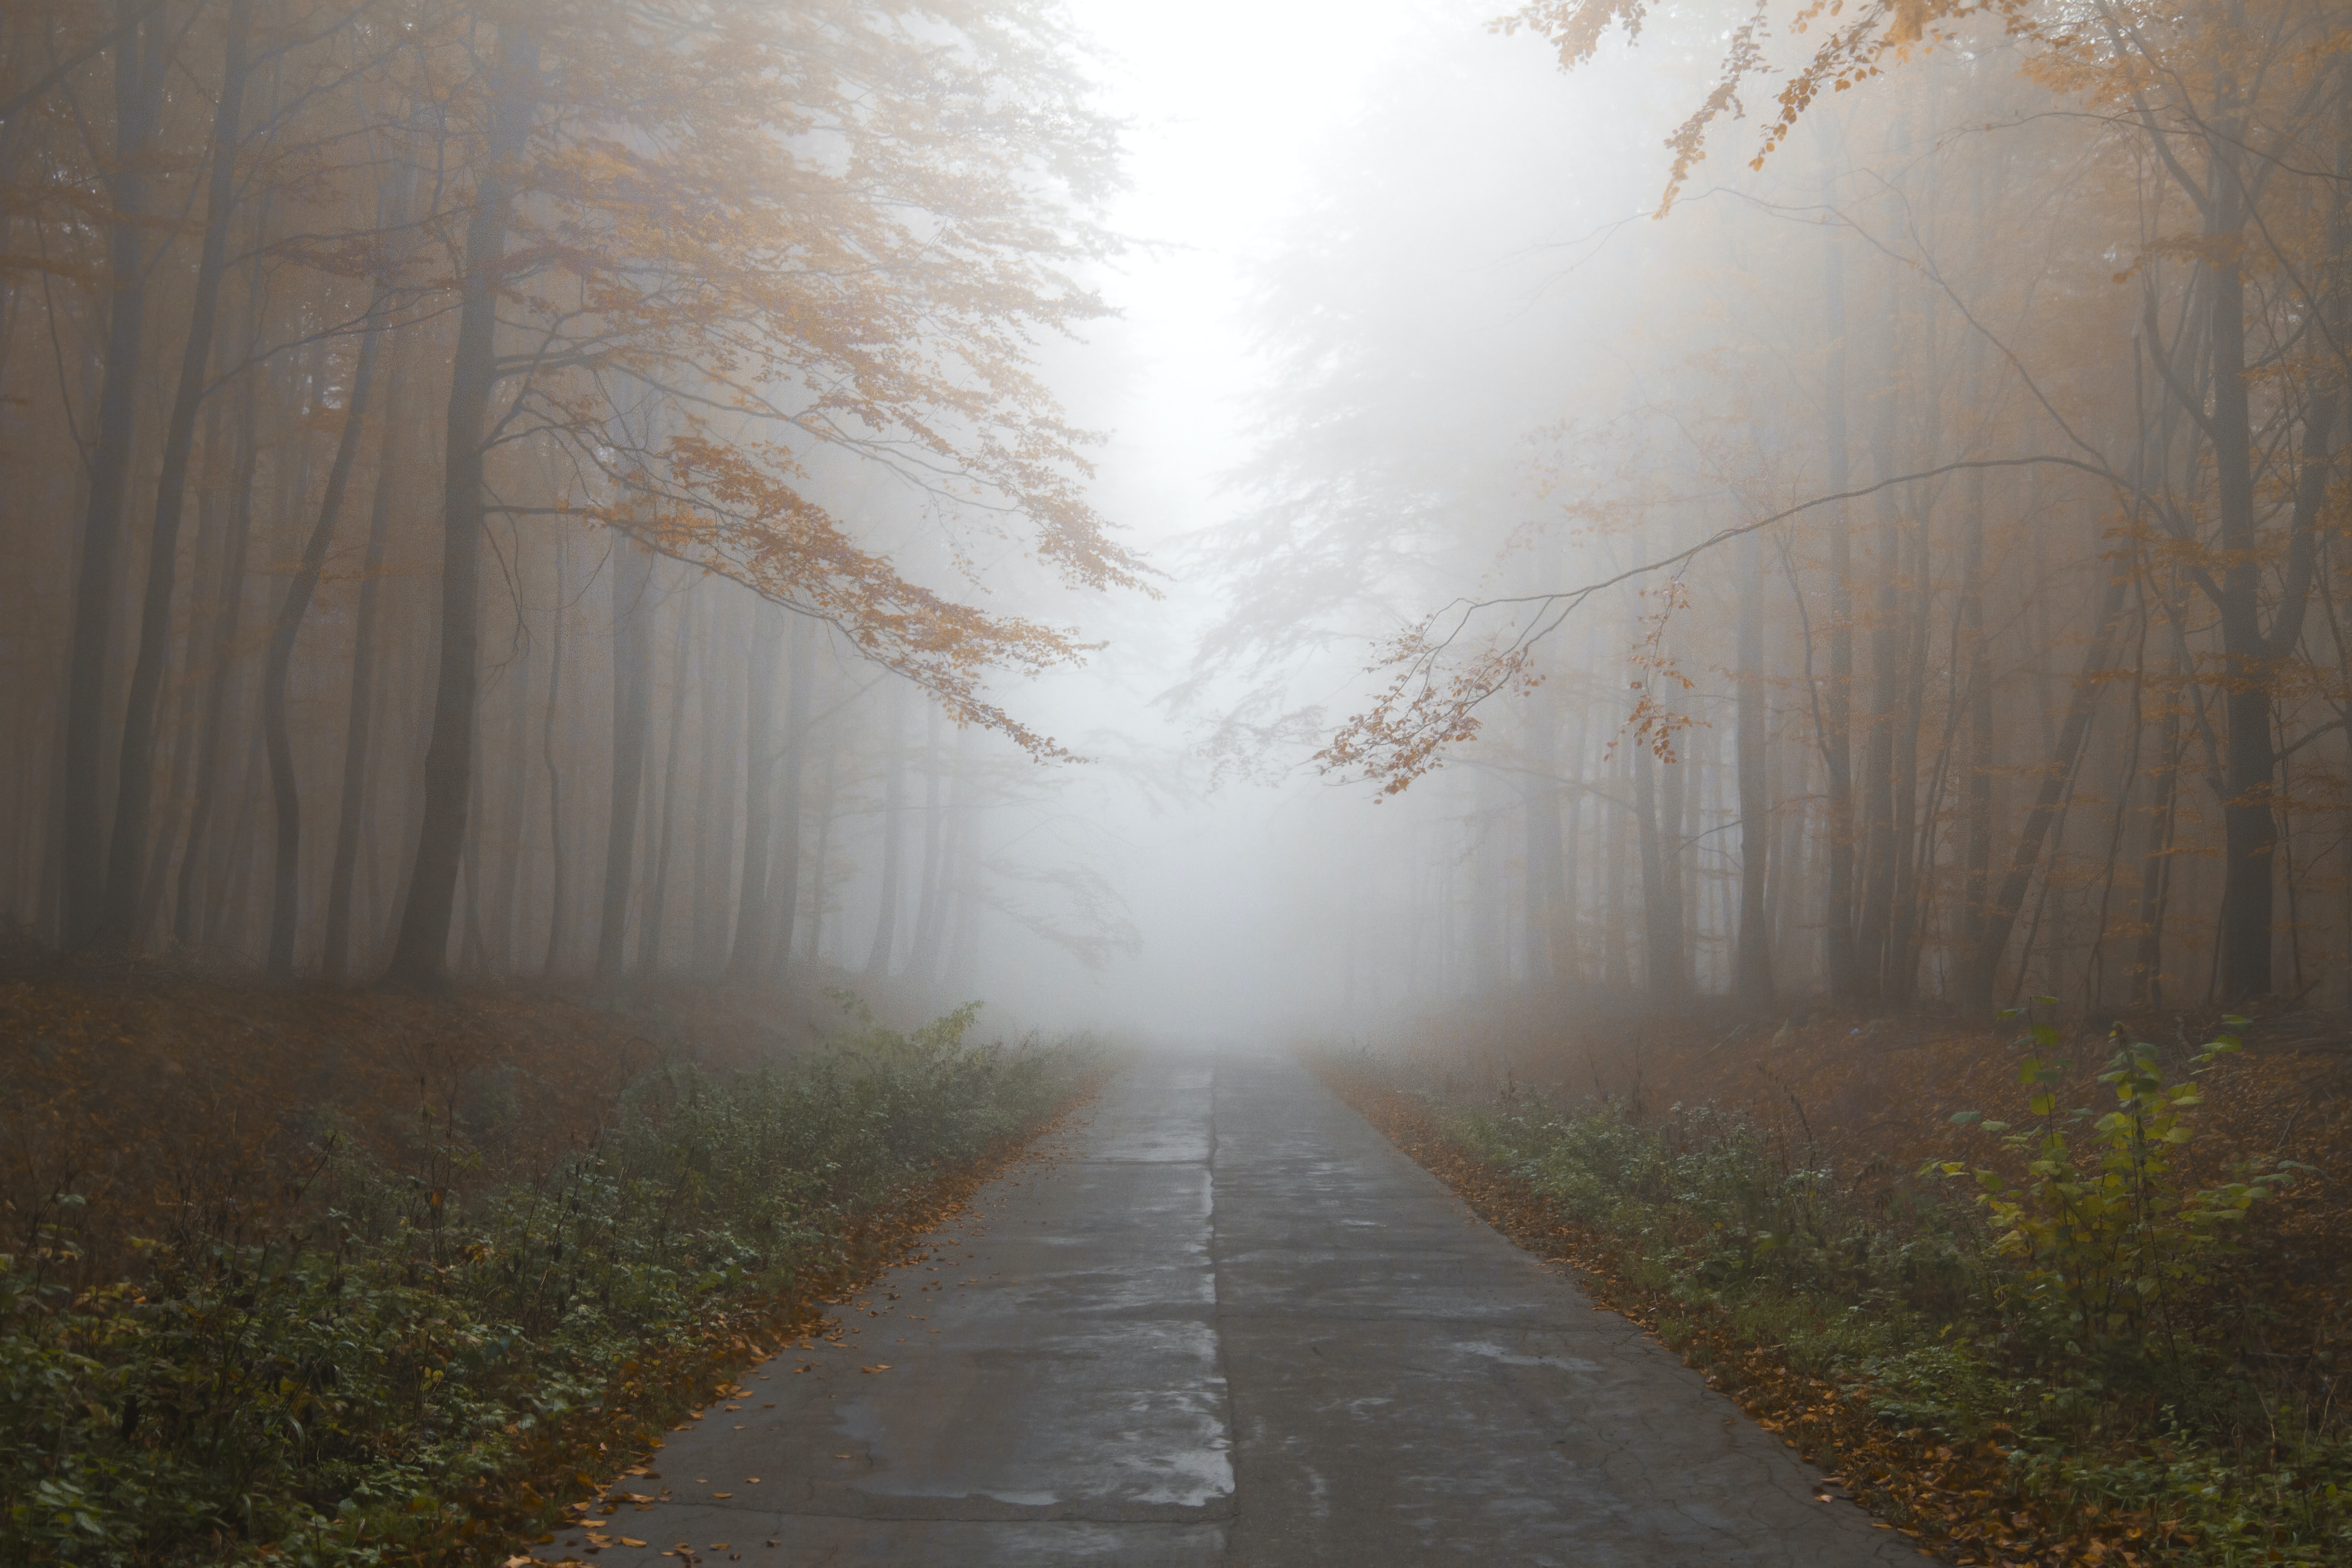 A foggy forest road in rural Elblag